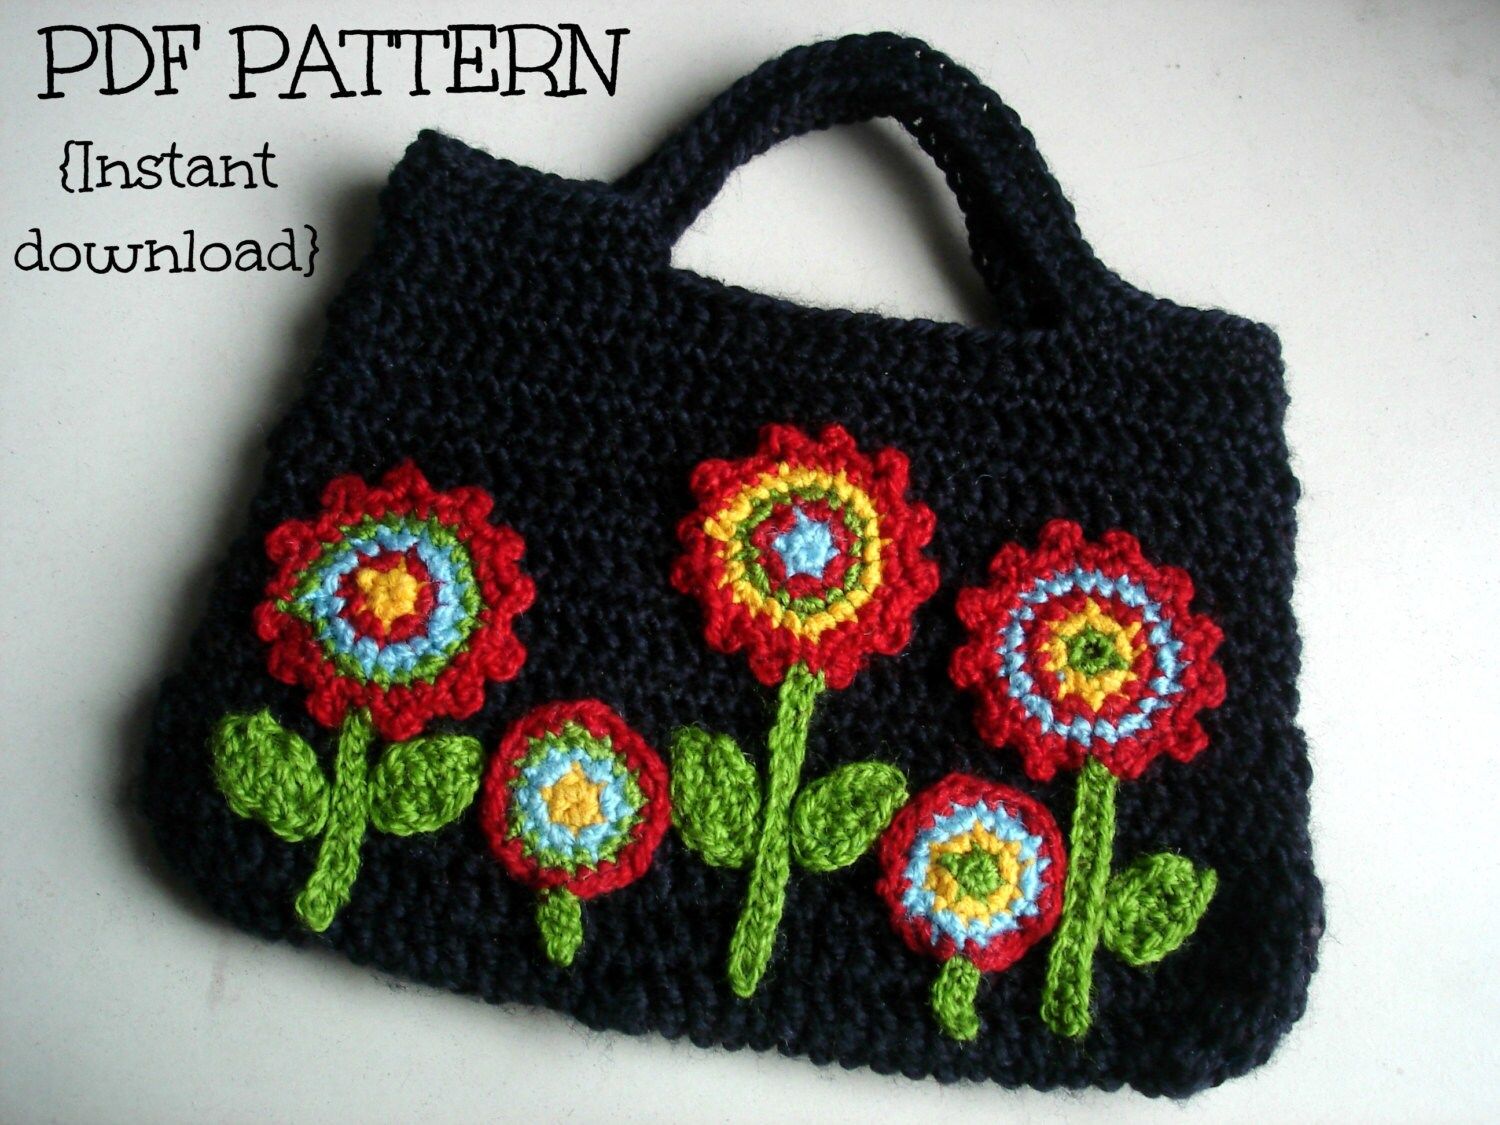 Crochet Bag Pattern Pdf : ... PDF Crochet bag pattern, Night flower-garden bag, Pattern No. 17